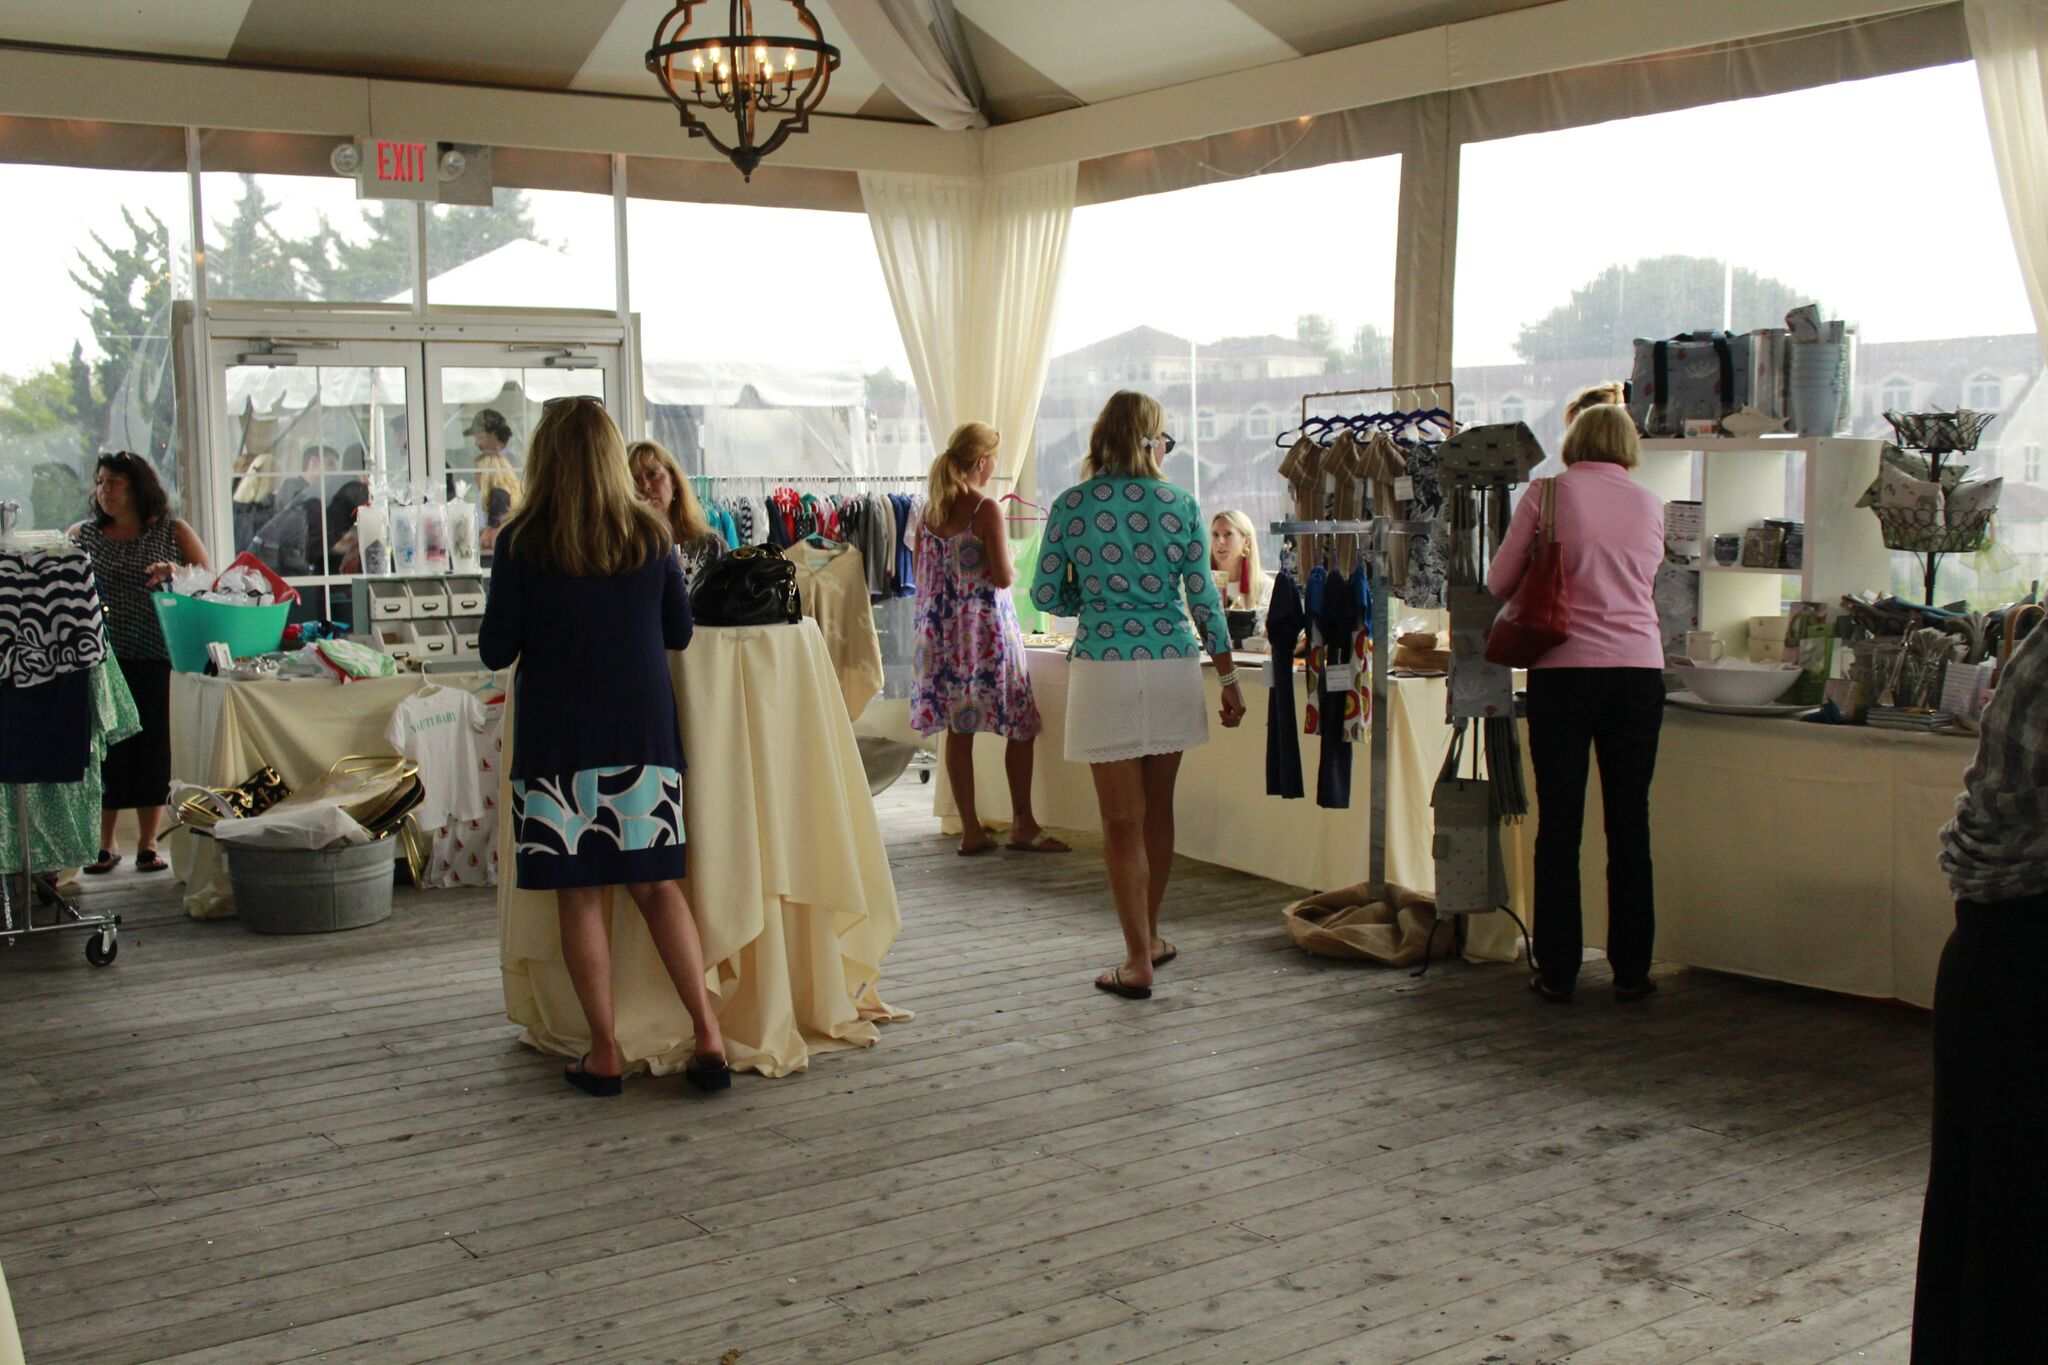 Browse beautiful products from local vendors.